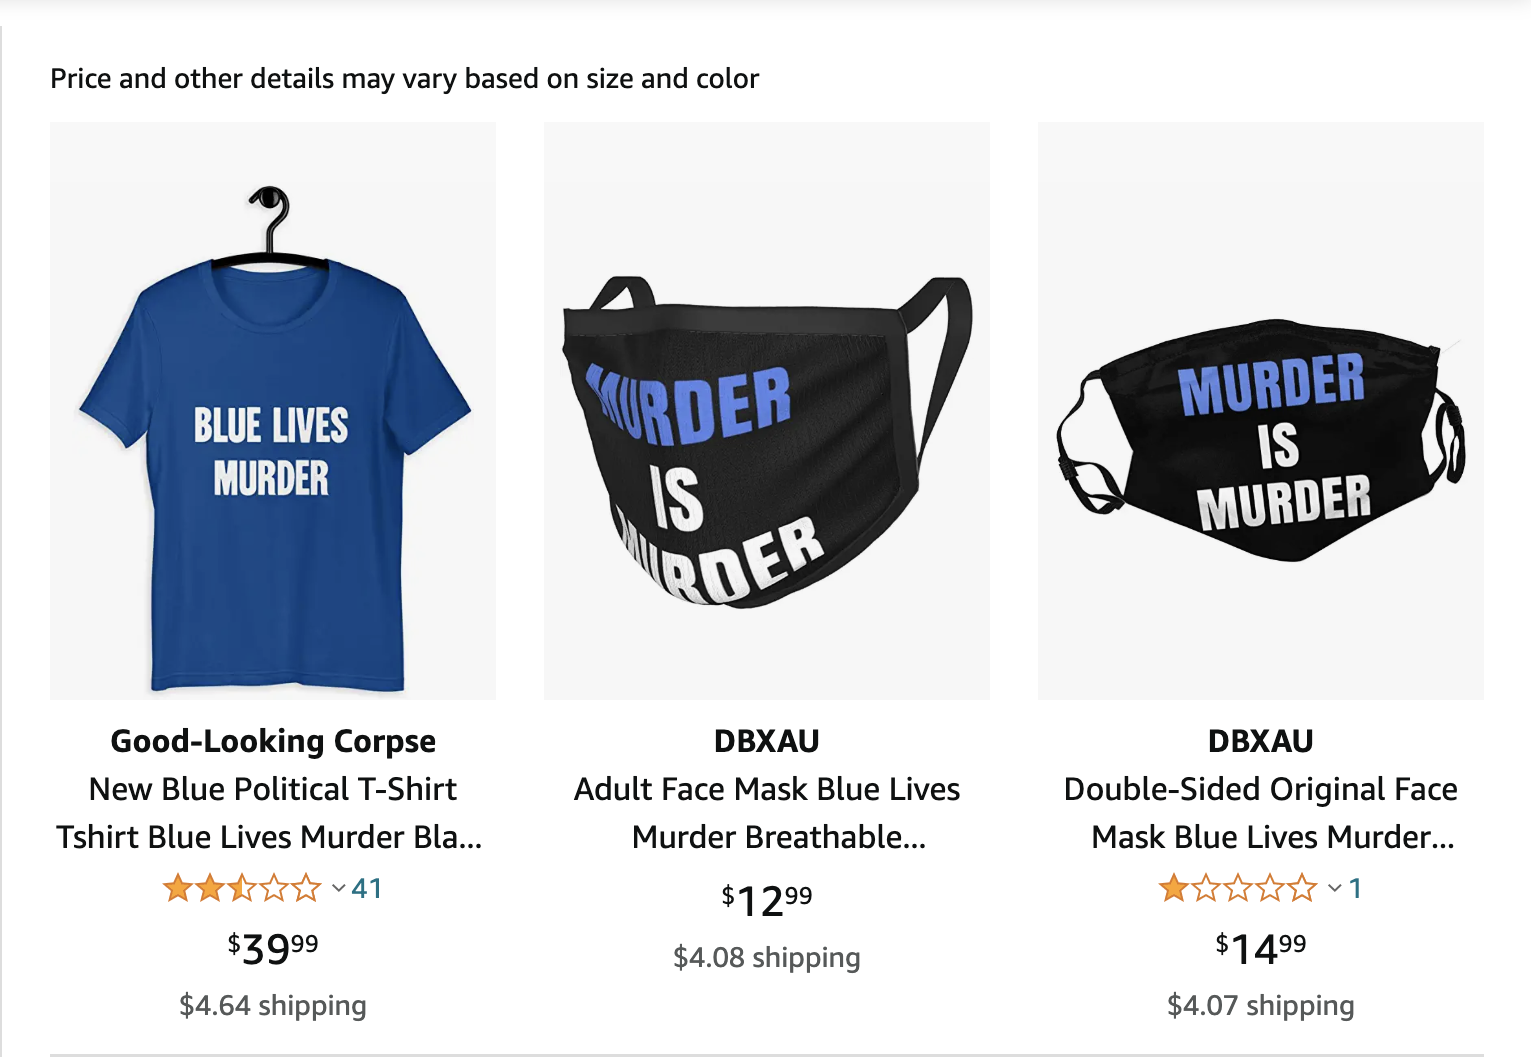 """Amazon has received scrutiny for apparel sold on its marketplace, including this T-shirt depicting the phrase """"Blue Lives Murder"""" and face masks saying """"Murder is Murder."""""""